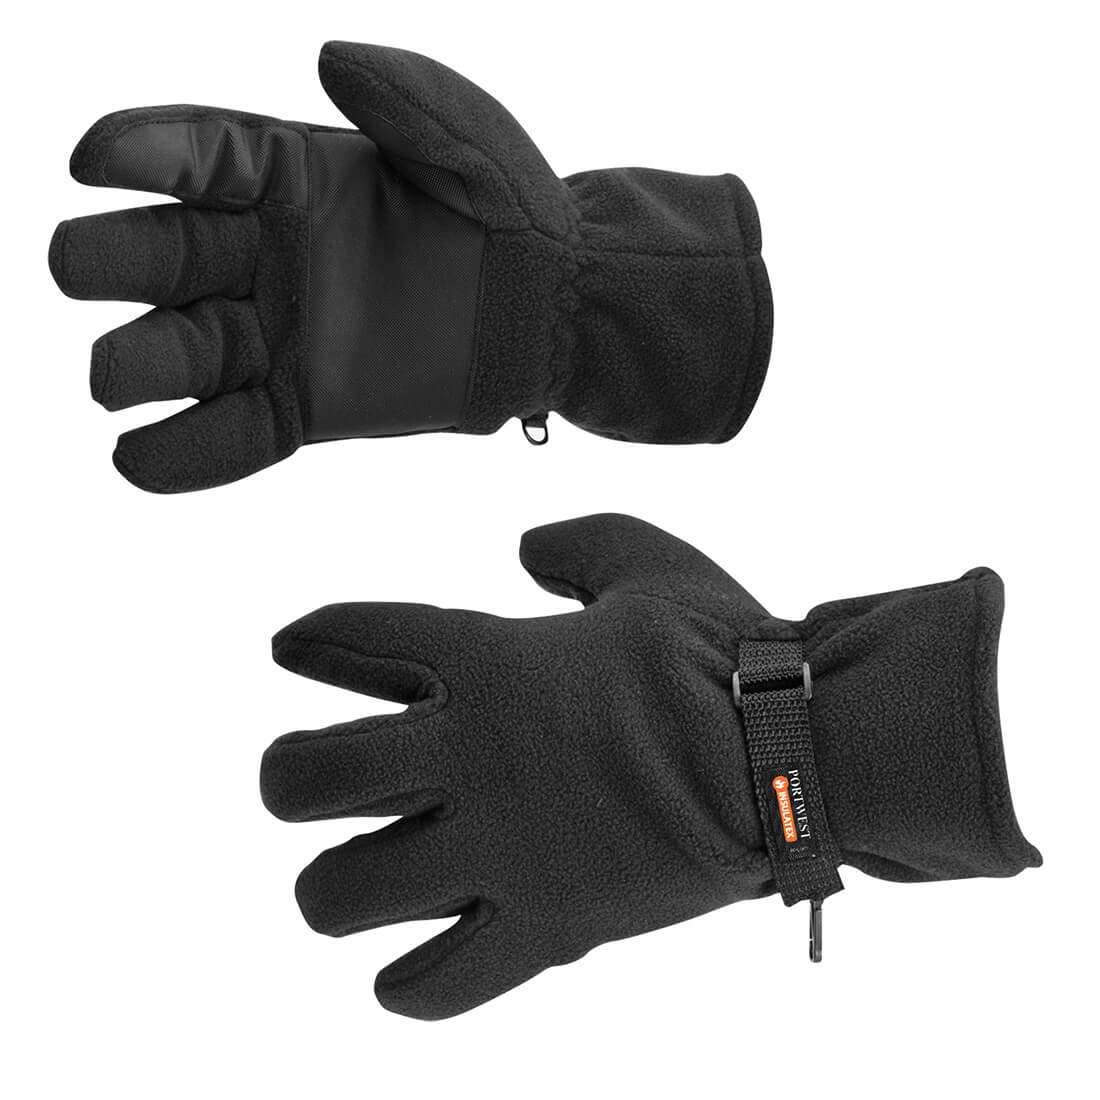 Image of Portwest Insulatex Lined Fleece Gripper Gloves Black One Size